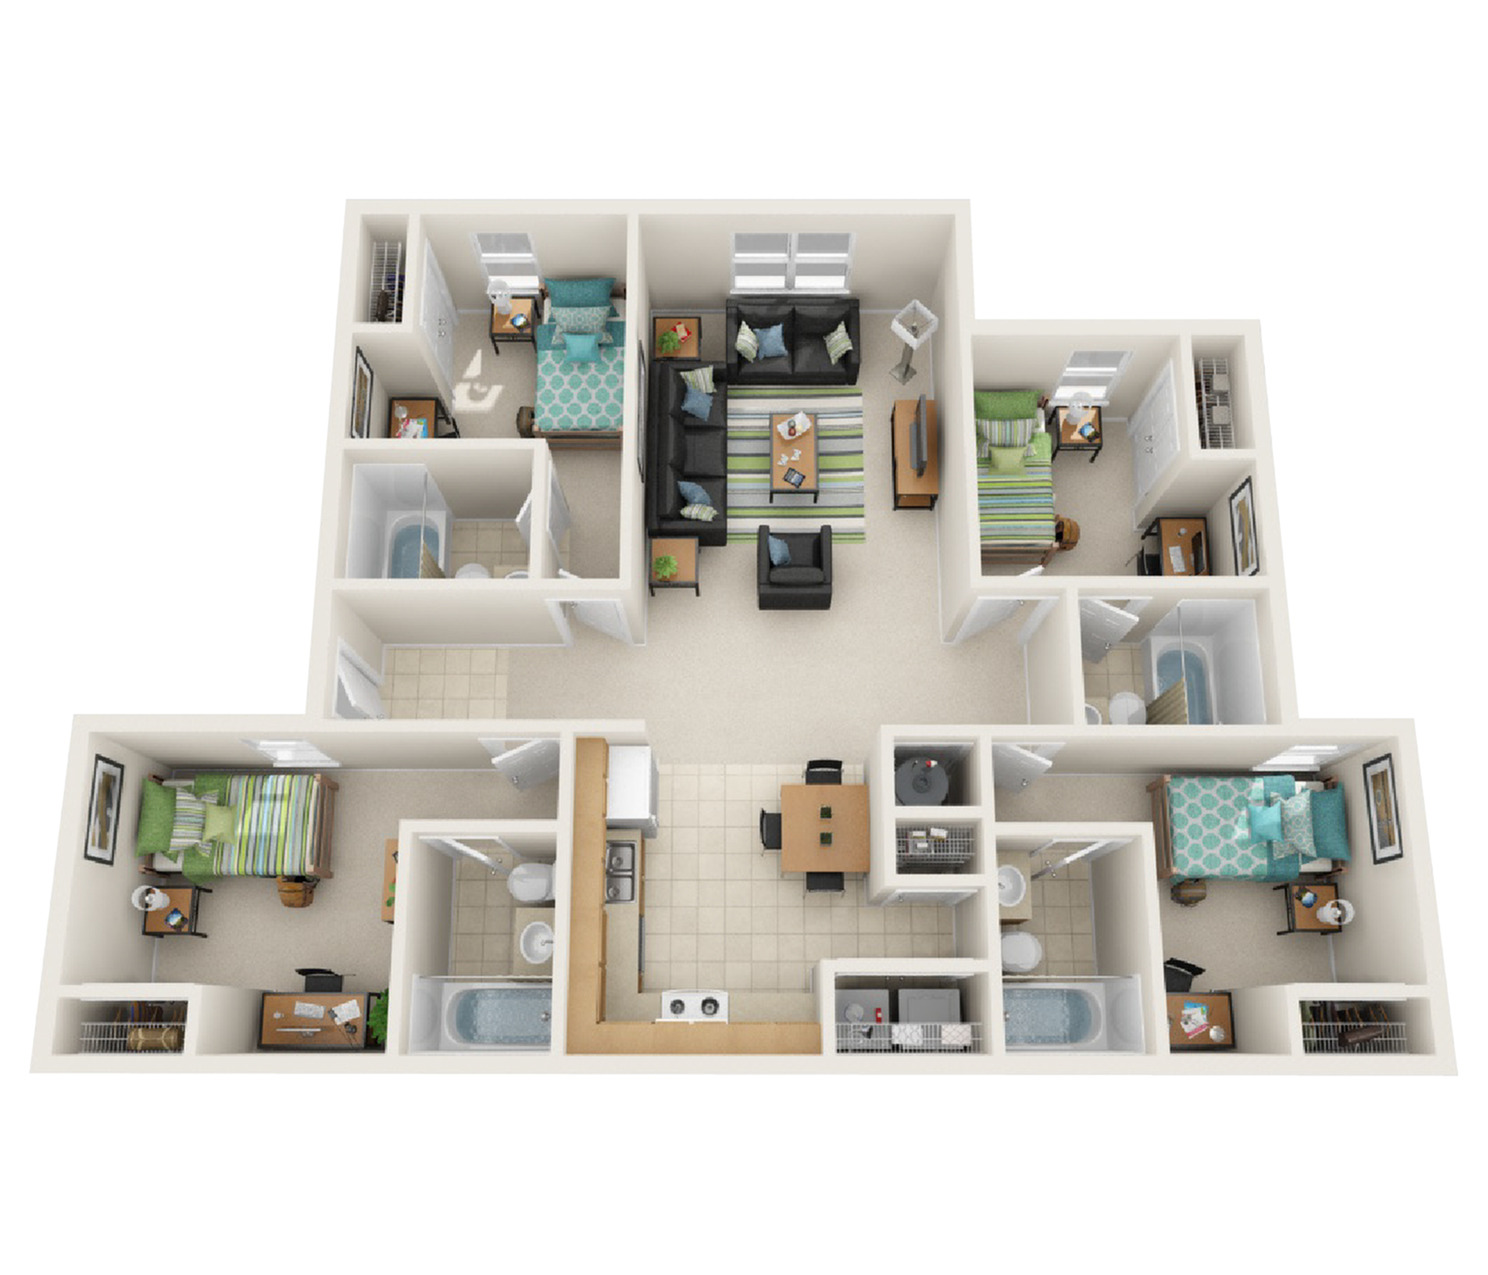 4 Bedroom Deluxe Floor Plan